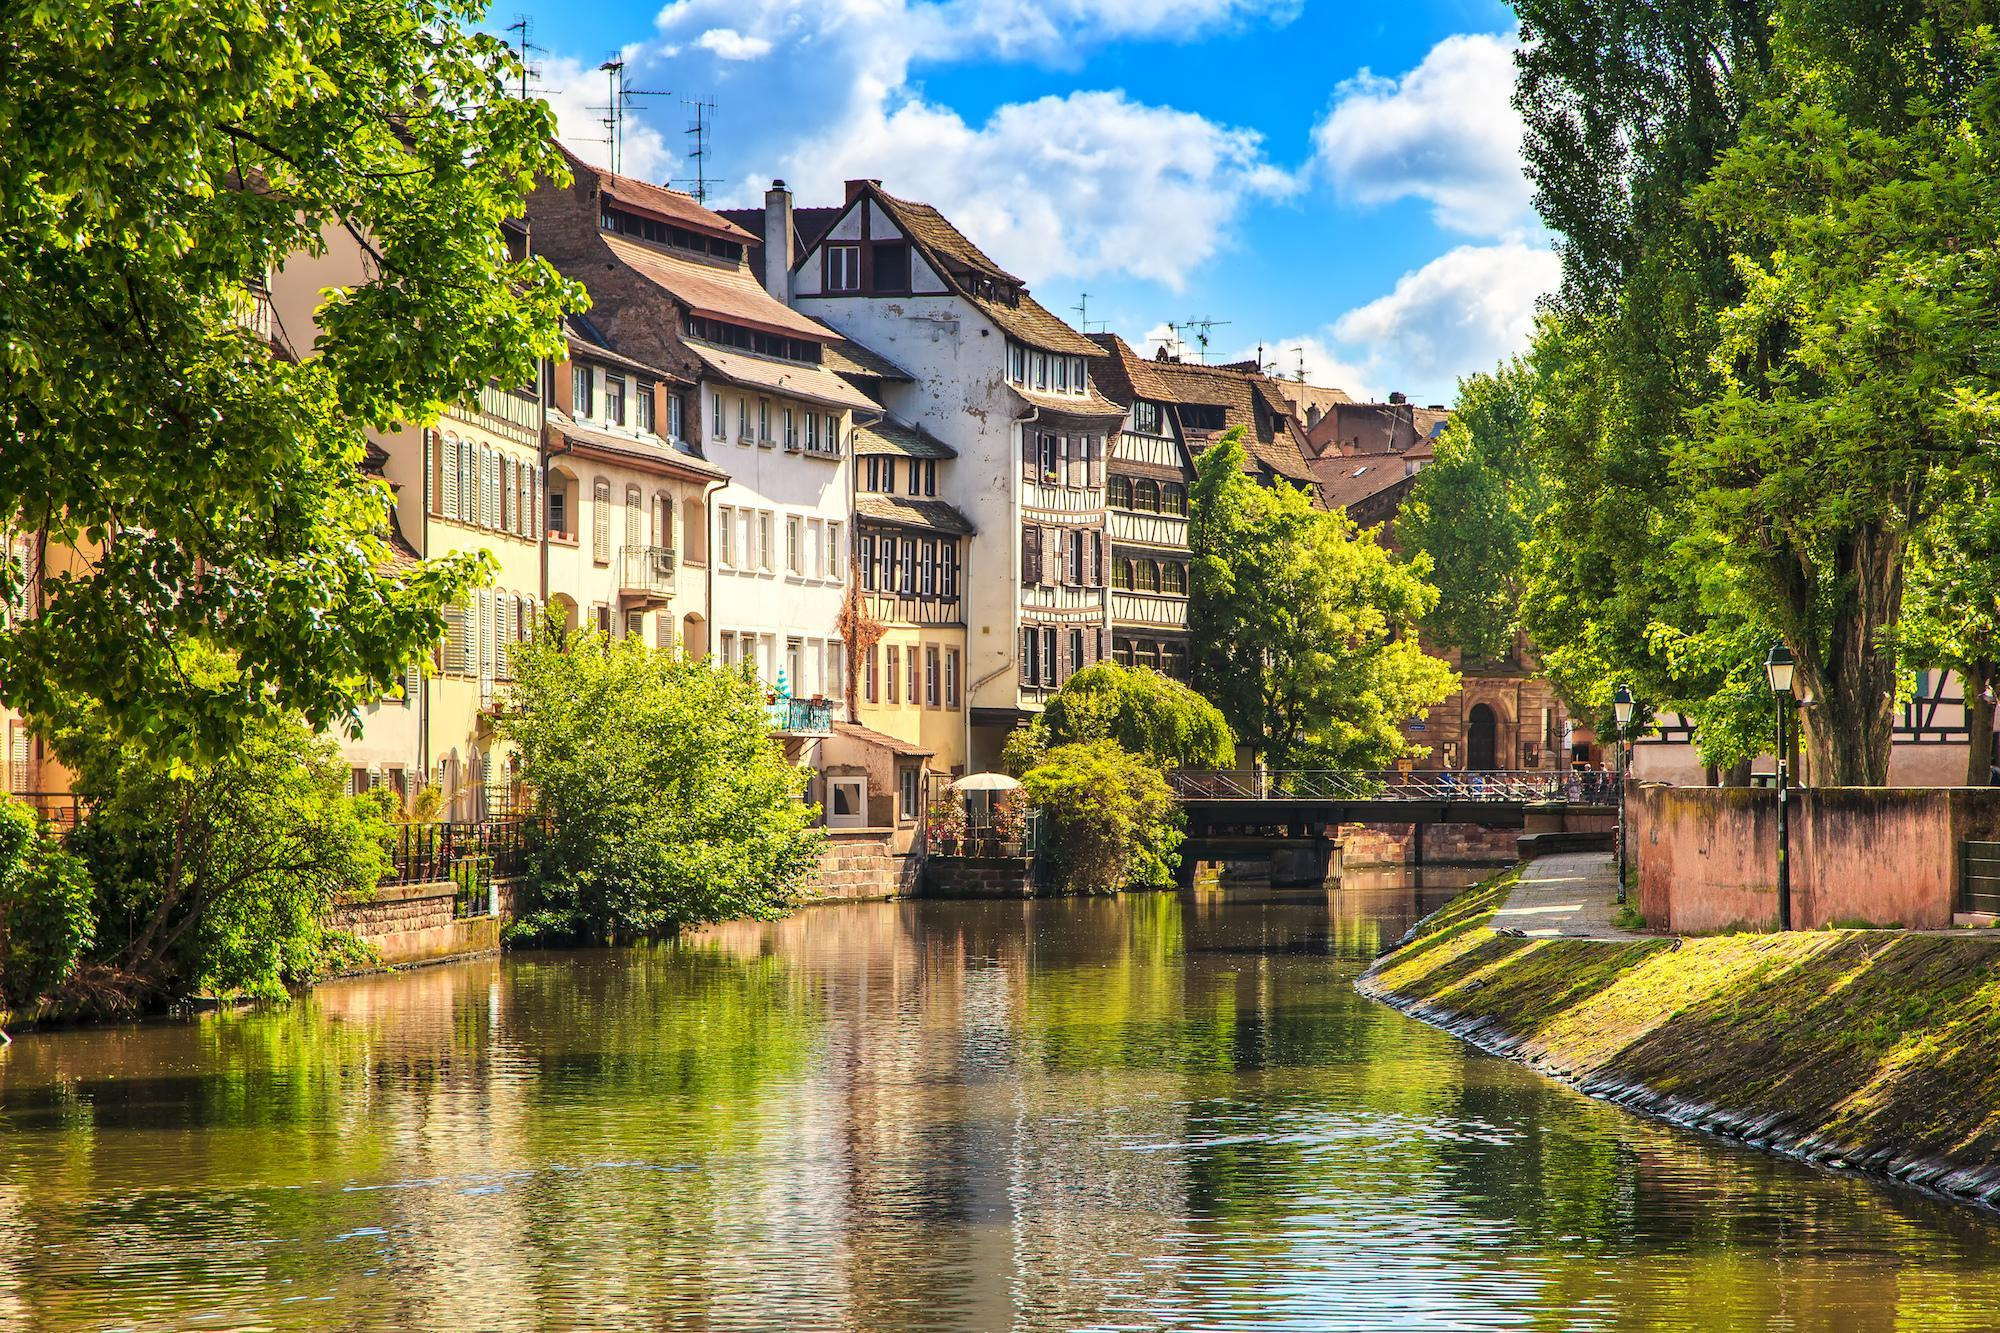 How to Spend 1 Day in Strasbourg